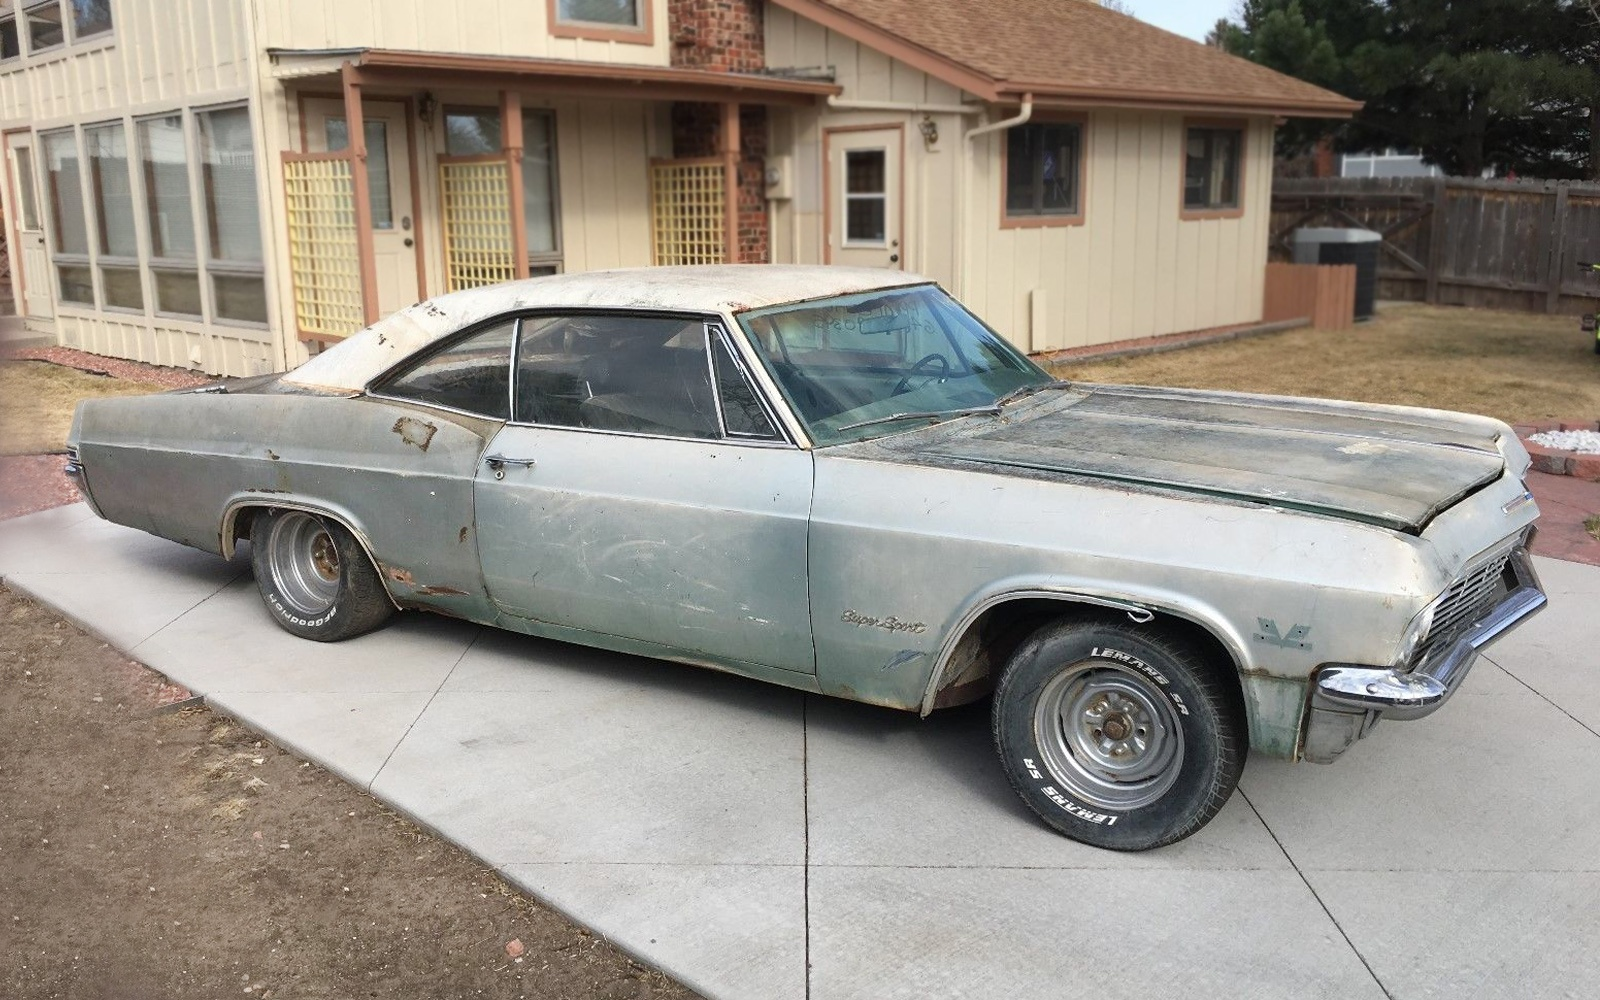 1965 chevrolet impala ss 396 also 1965 impala ss 396 425 hp for sale - The Classic One Year Tail Lights Are An Easy Car Spotters Feature Of The 1965 Chevys Chevy Broke A Sales Record With This Redesigned Car And It Was A